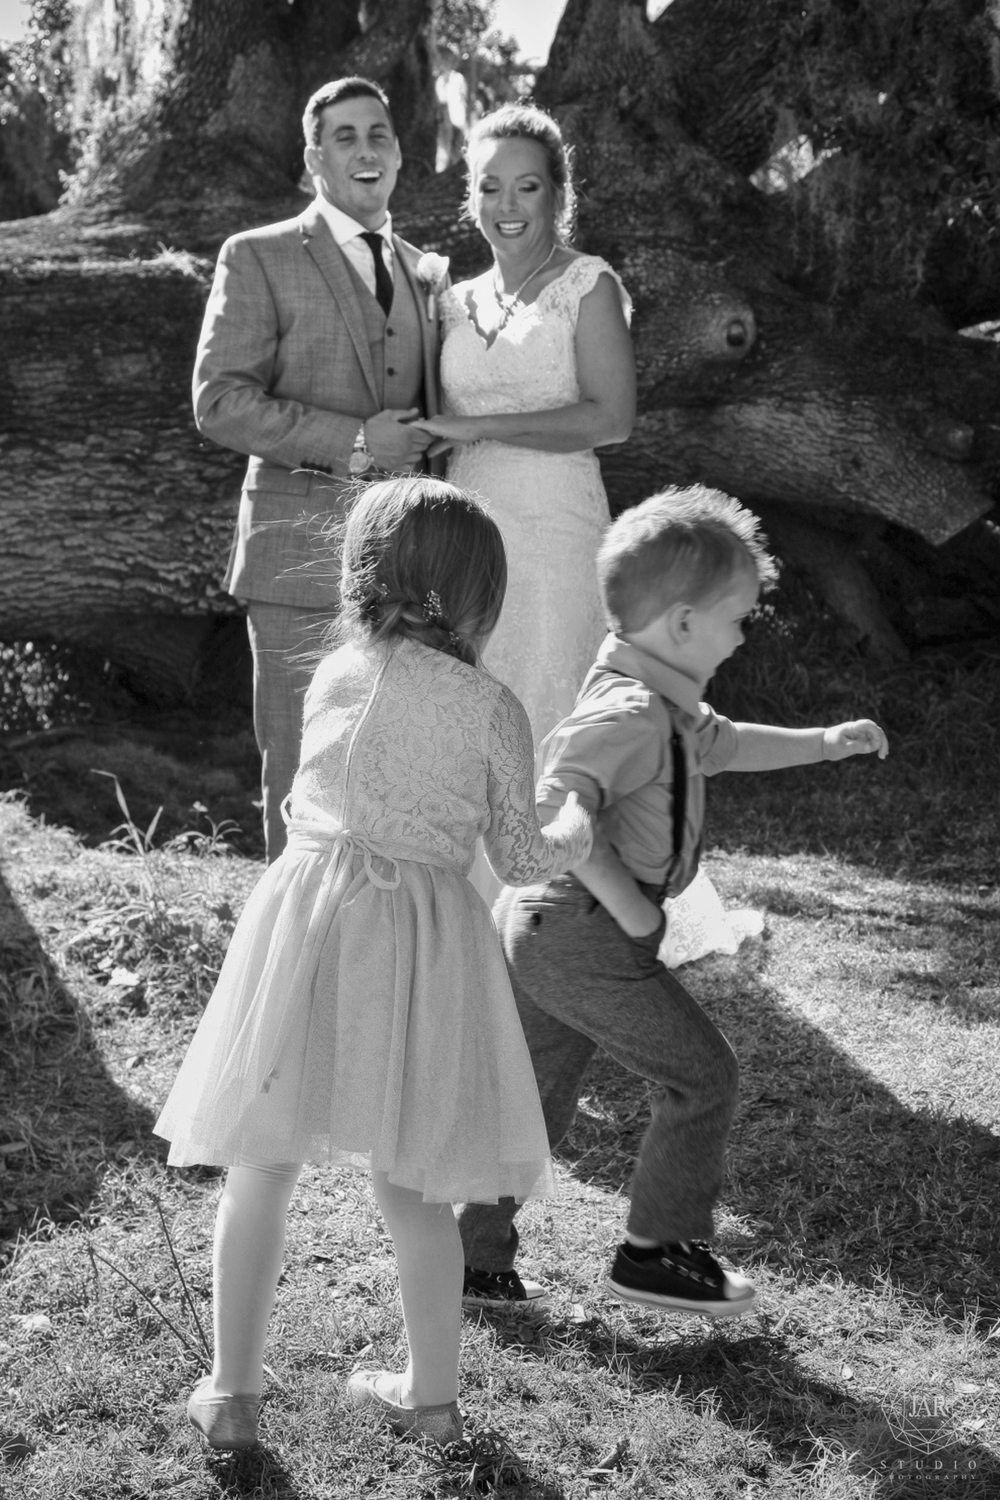 18-kids-wedding-fun-picture-jarstudio.JPG